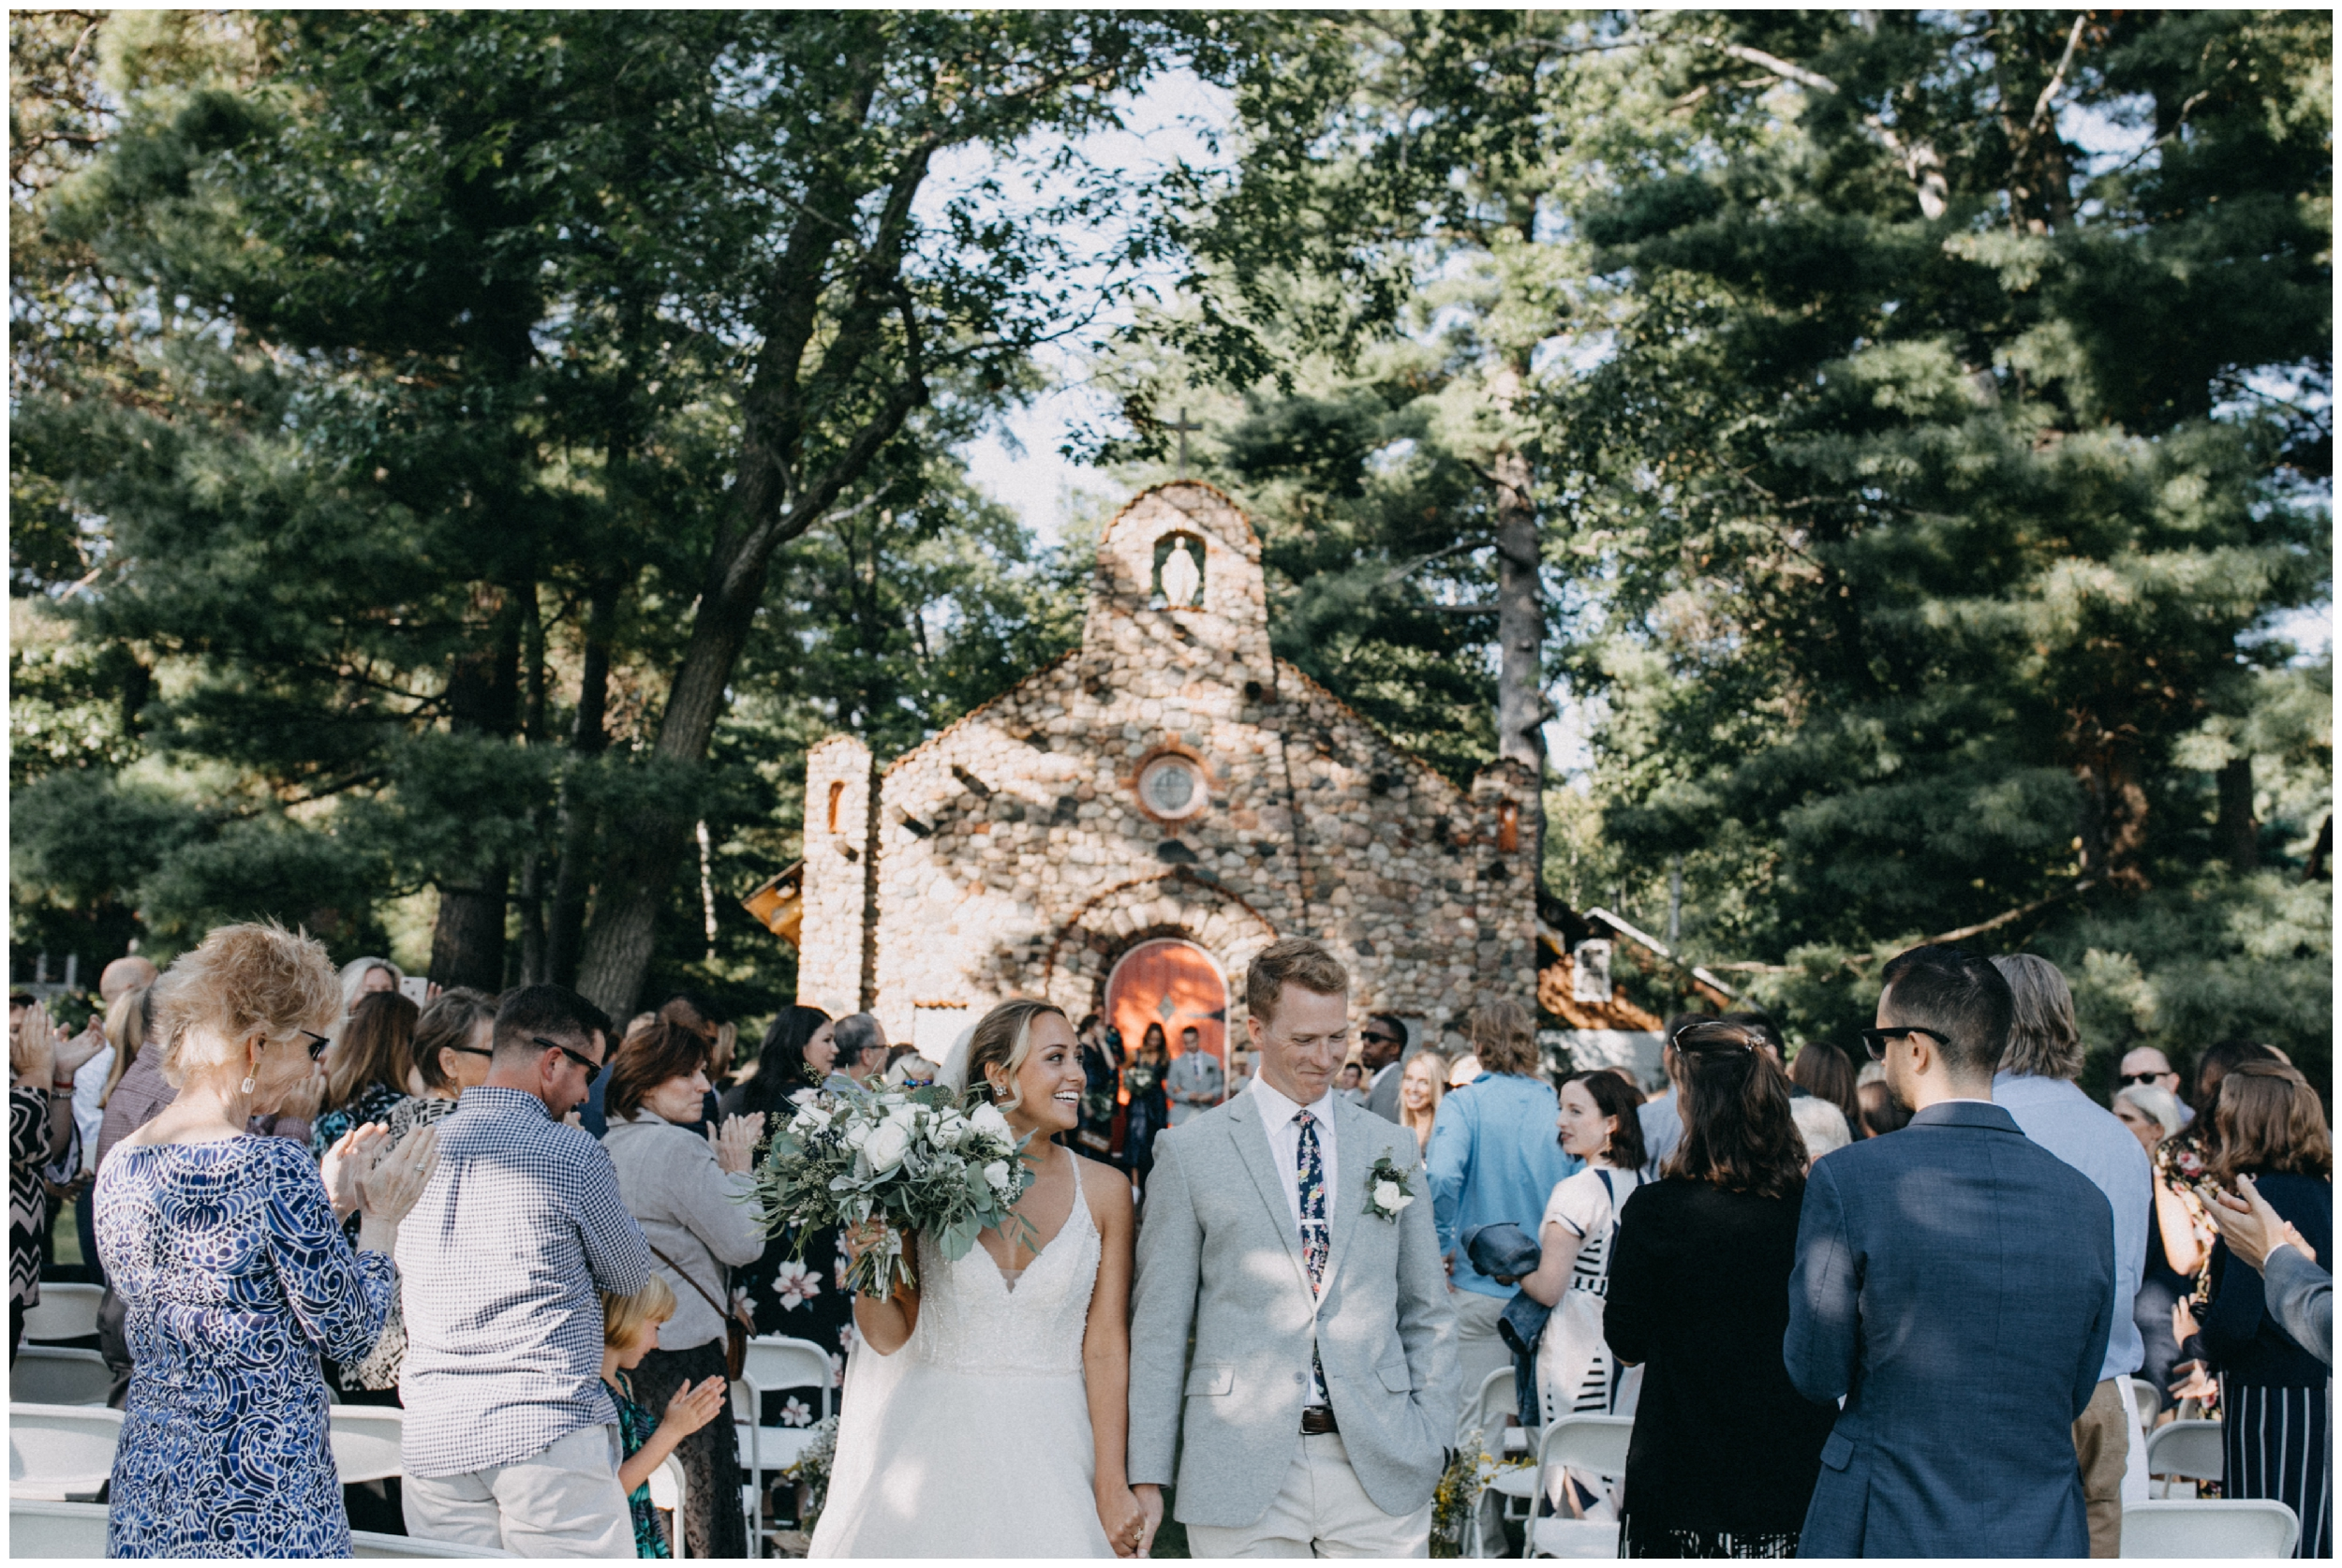 Stone chapel in the woods wedding ceremony at Camp Foley